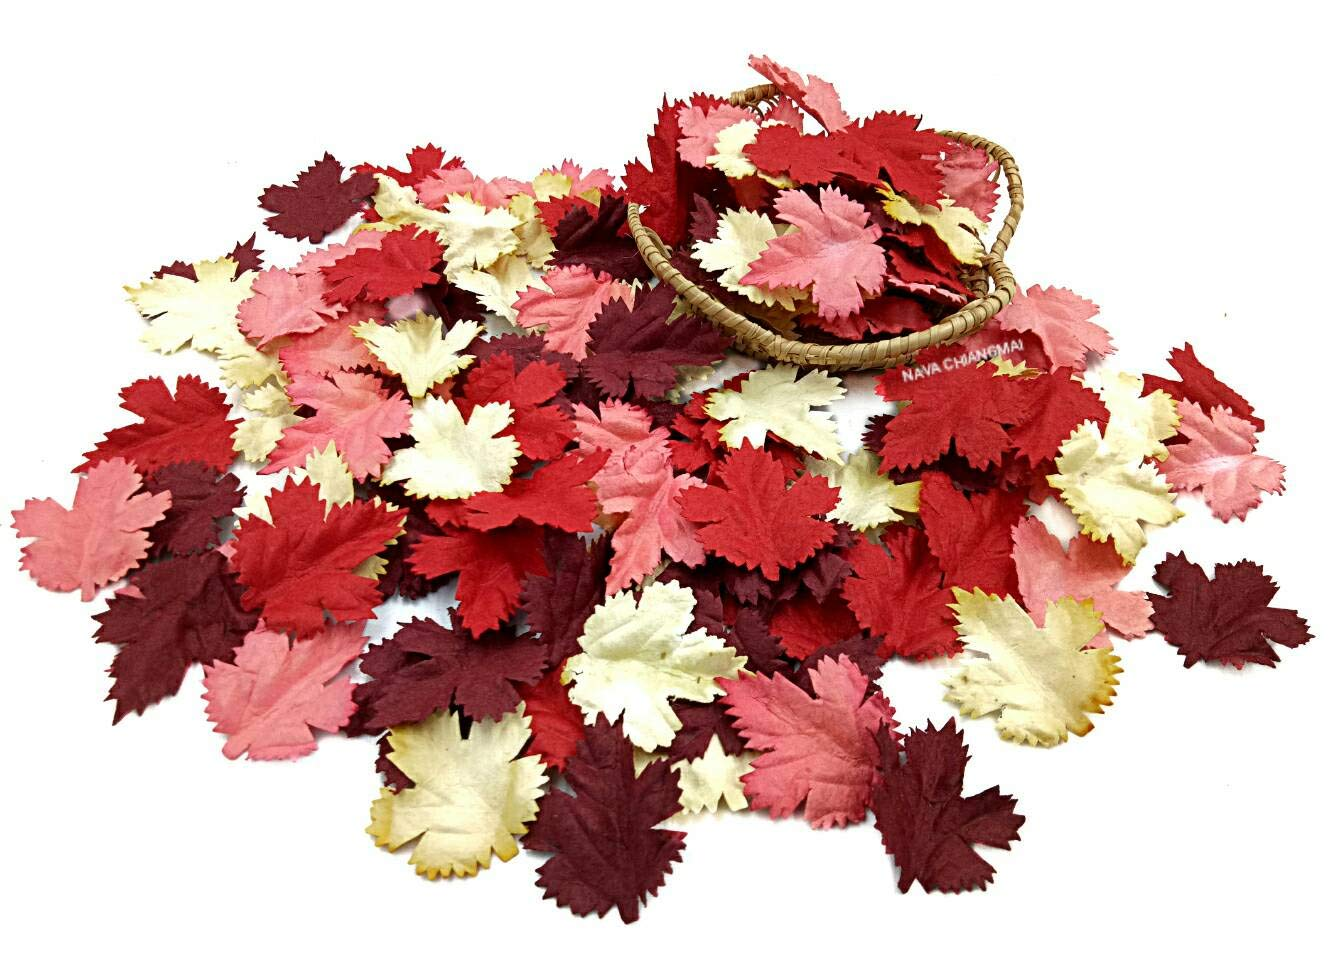 NAVA CHIANGMAI 100 pcs Mulberry Paper Maple Leaves Artificial Leaves Craft Leaves for Scrapbooking Wedding Doll House Supplies Card (Brown Tone)